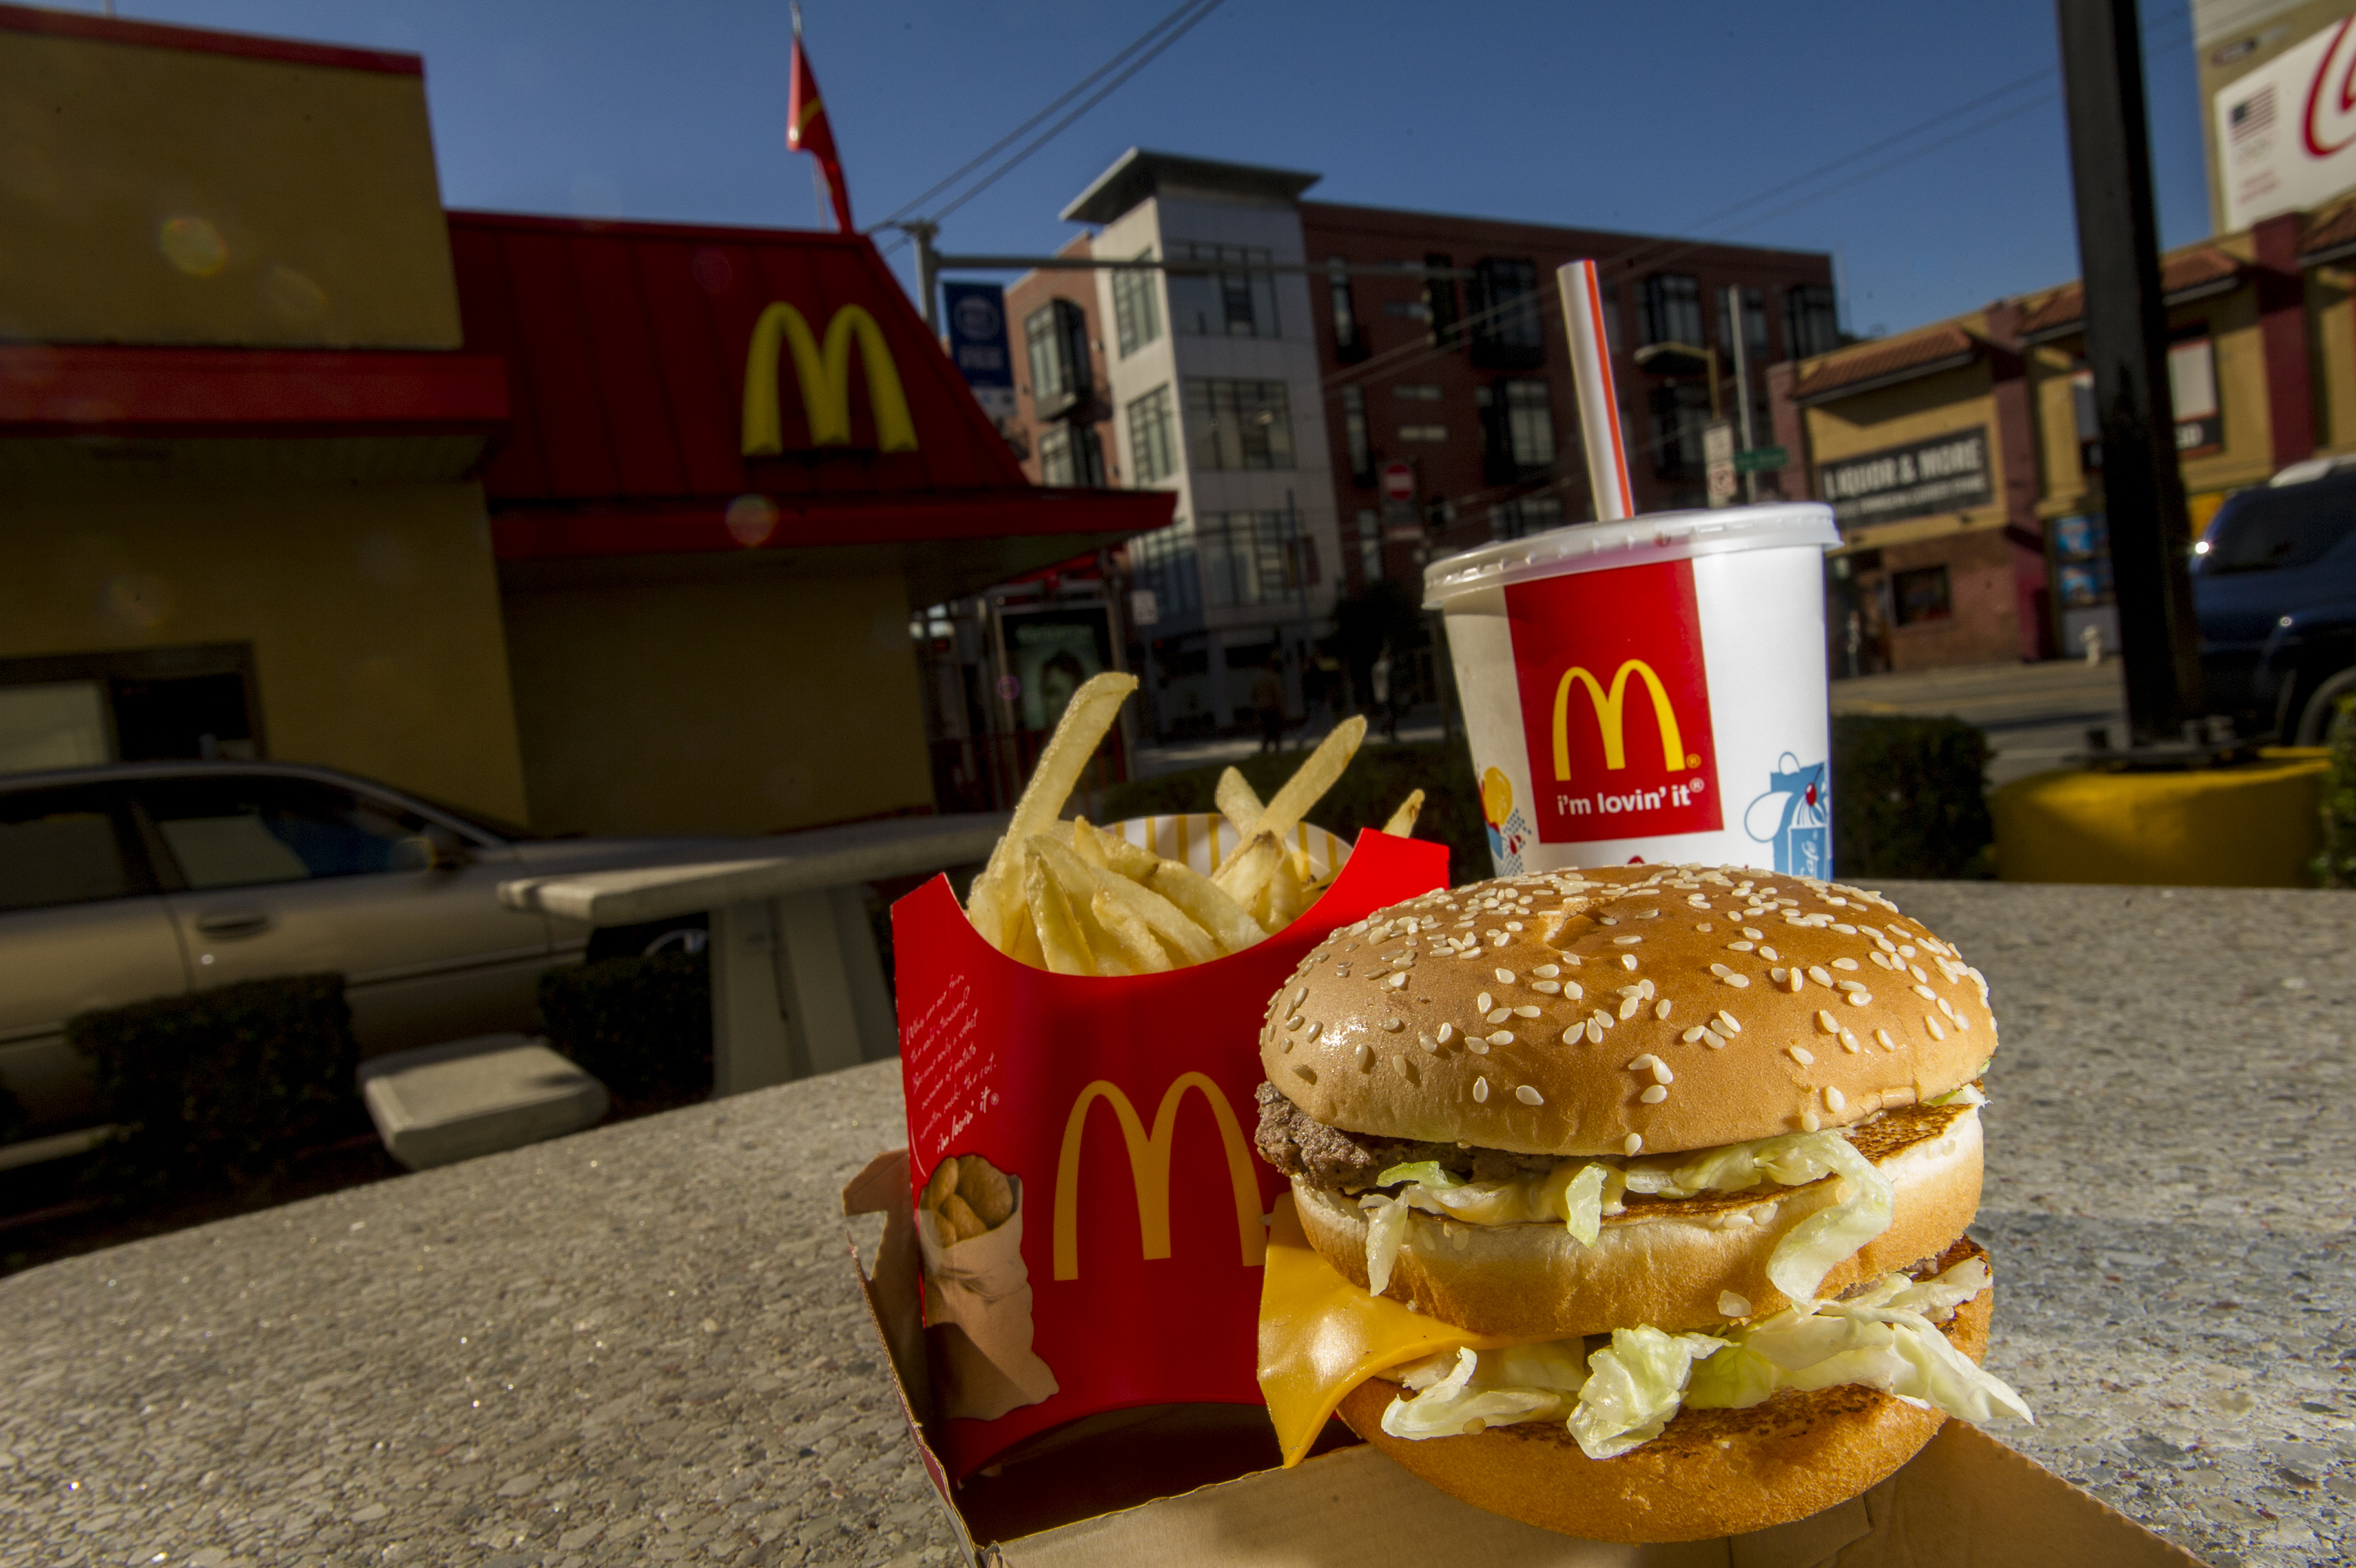 A McDonald's Corp. Big Mac meal is arranged for a photograph outside of a restaurant in San Francisco, California, U.S., on Wednesday, Jan. 22, 2014.